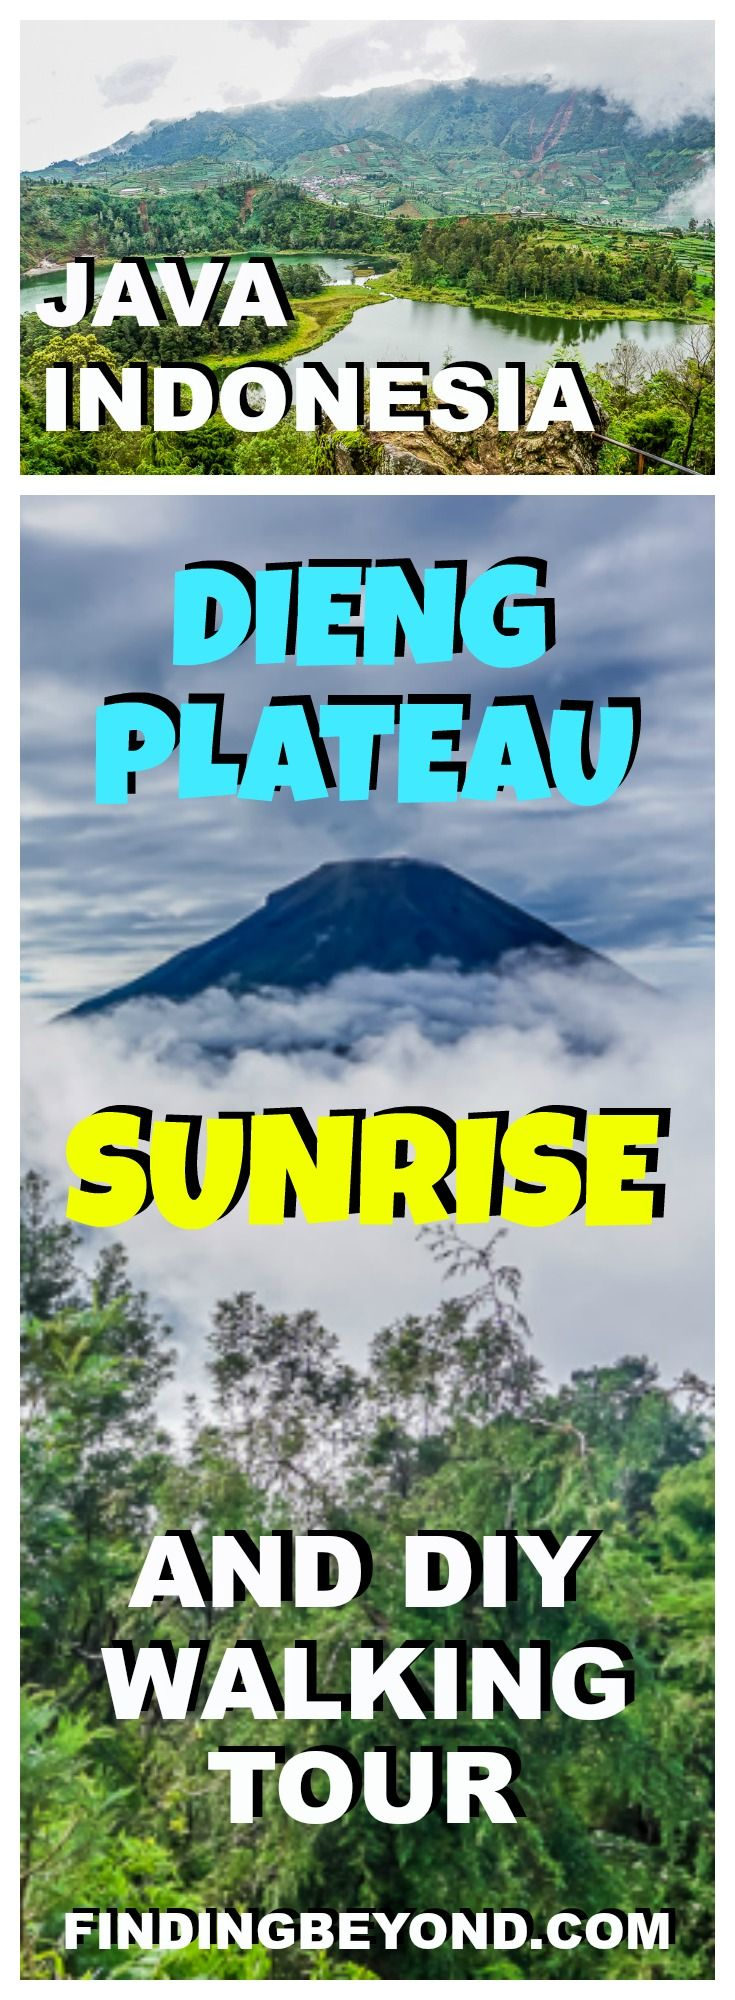 Check out our Dieng Plateau sunrise and DIY walking tour in Java, Indonesia. You don't need a guide to see the soaring volcanoes, steaming craters and colourful lakes. | Best Places to visit Indonesia | Sunrise without tour in Java | Top Places To Visit In Java | Best Places to visit in Java | Best hikes in Java | Best hikes in Indonesia | Self guided tours Java | Self guided tours Indonesia | Walking Tours in Java | Visiting Dieng Plateau |